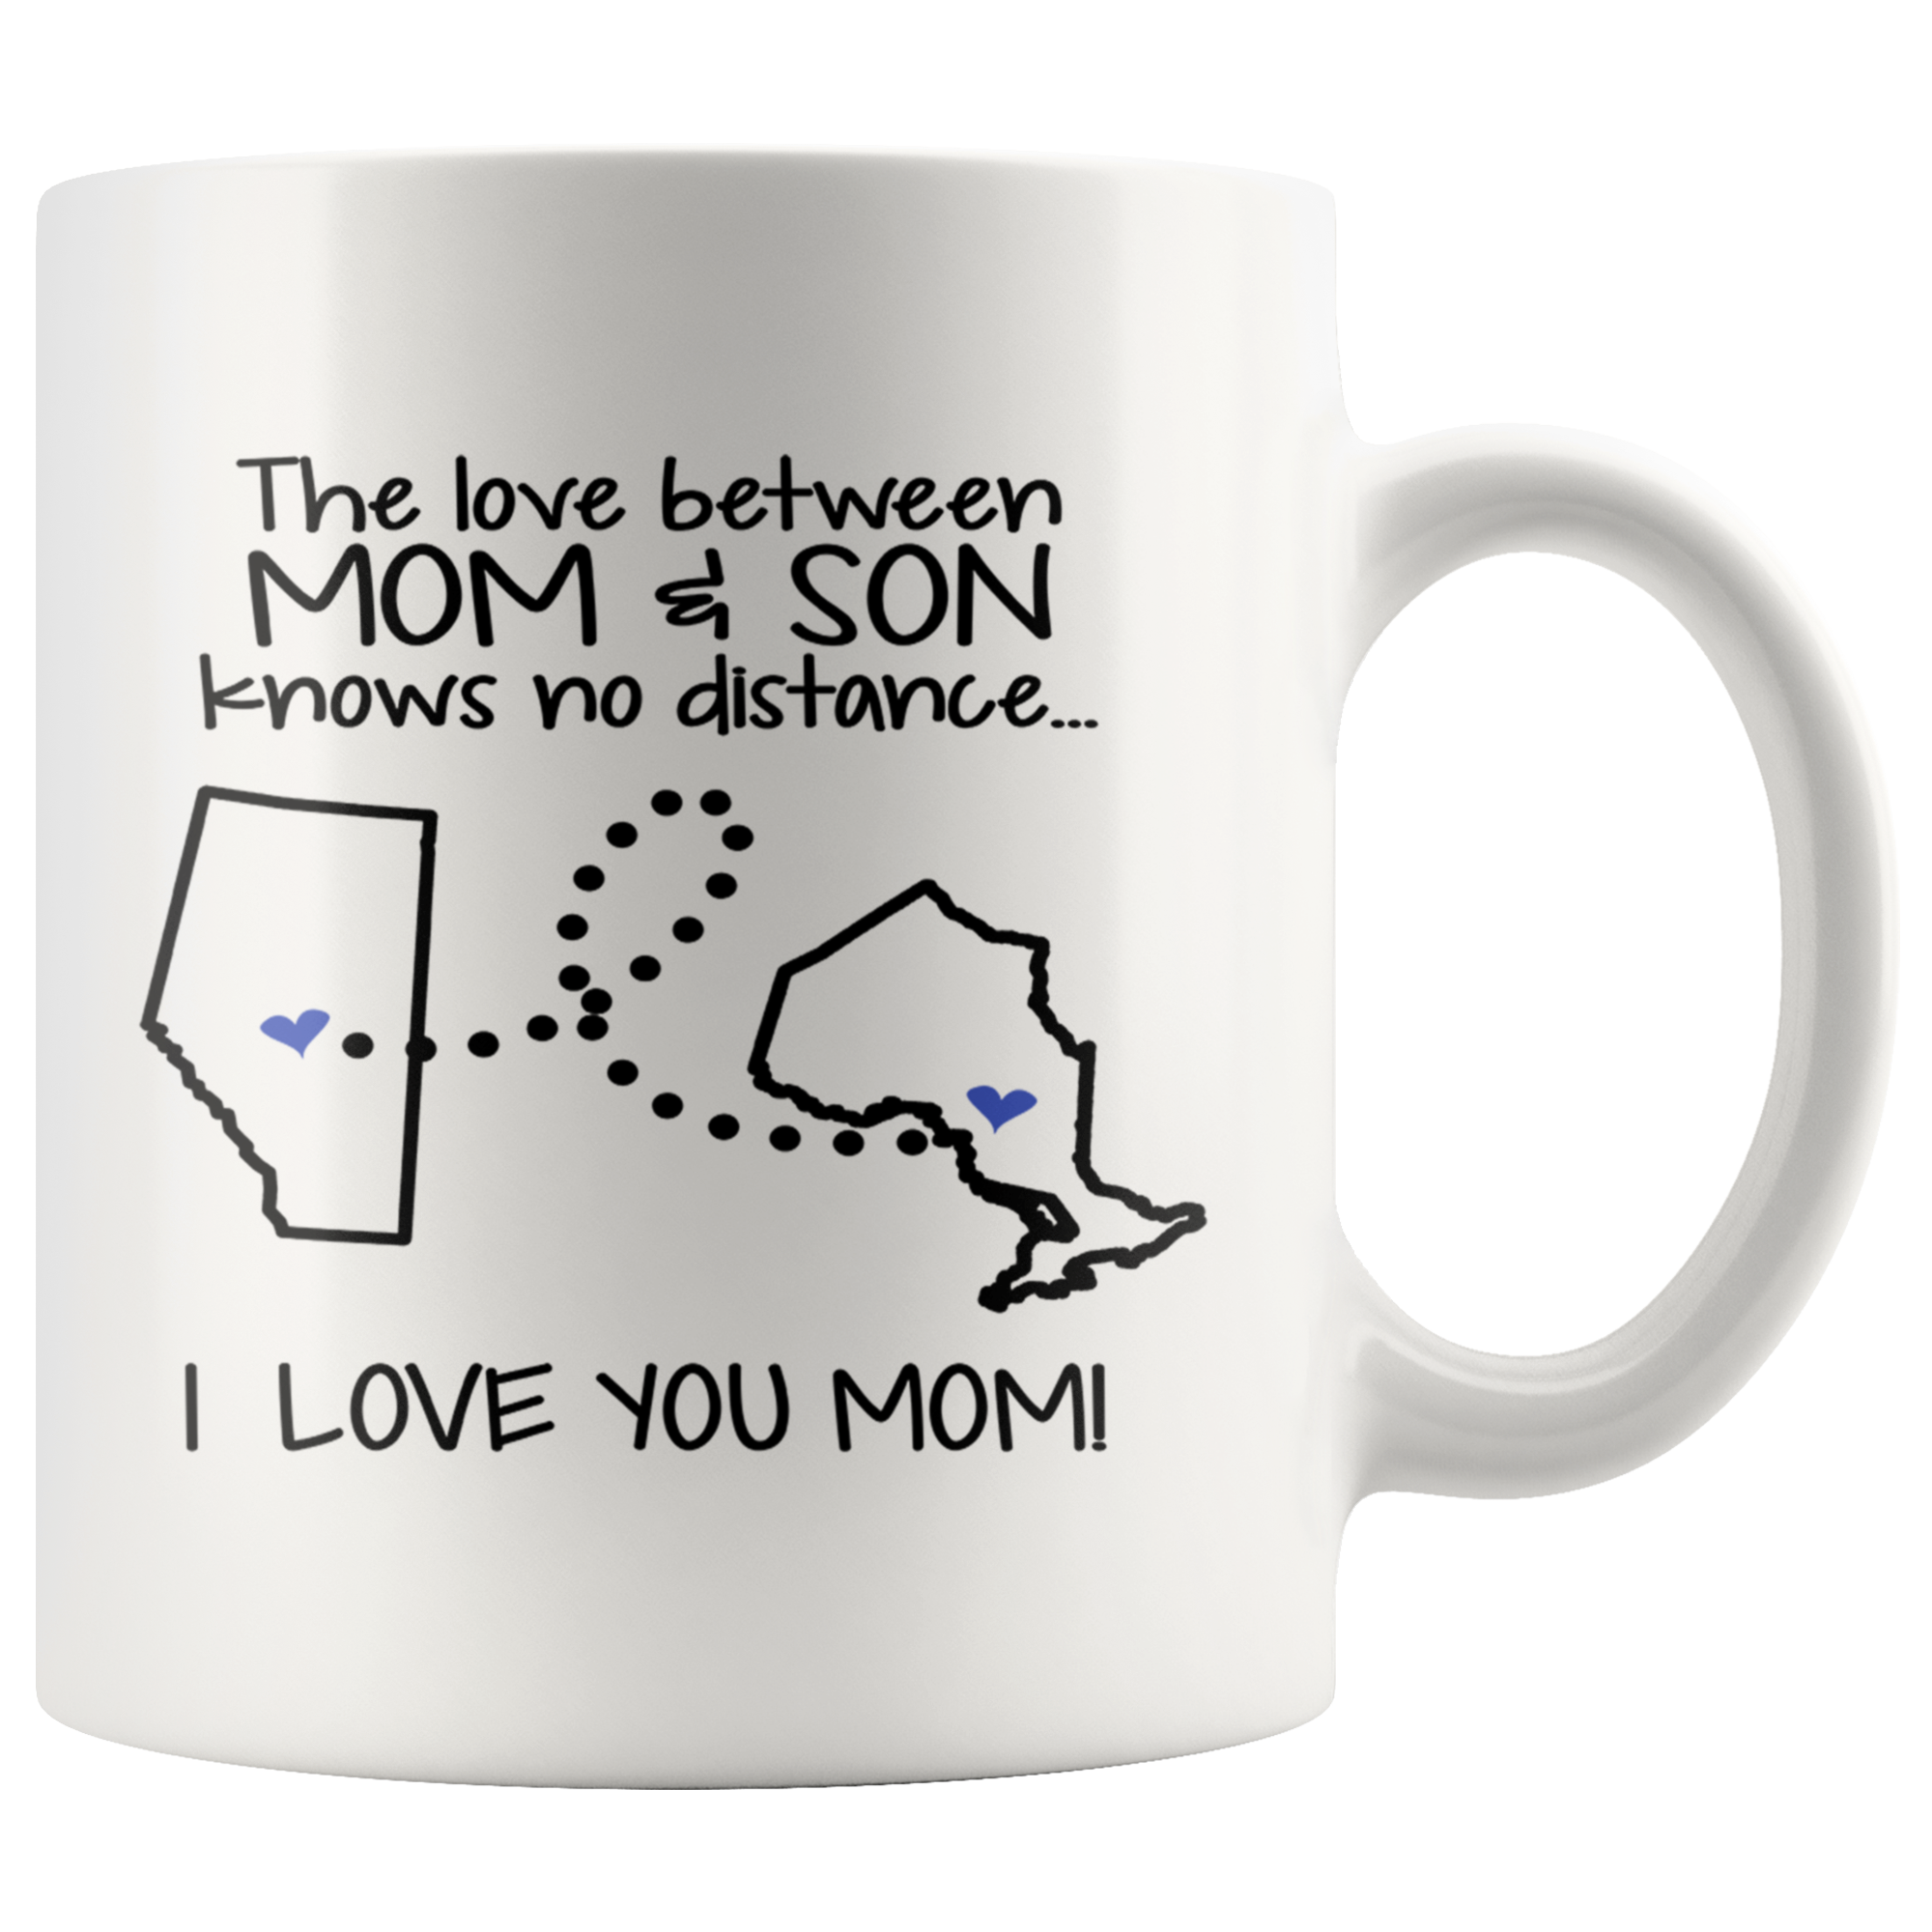 ONTARIO ALBERTA THE LOVE BETWEEN MOM AND SON